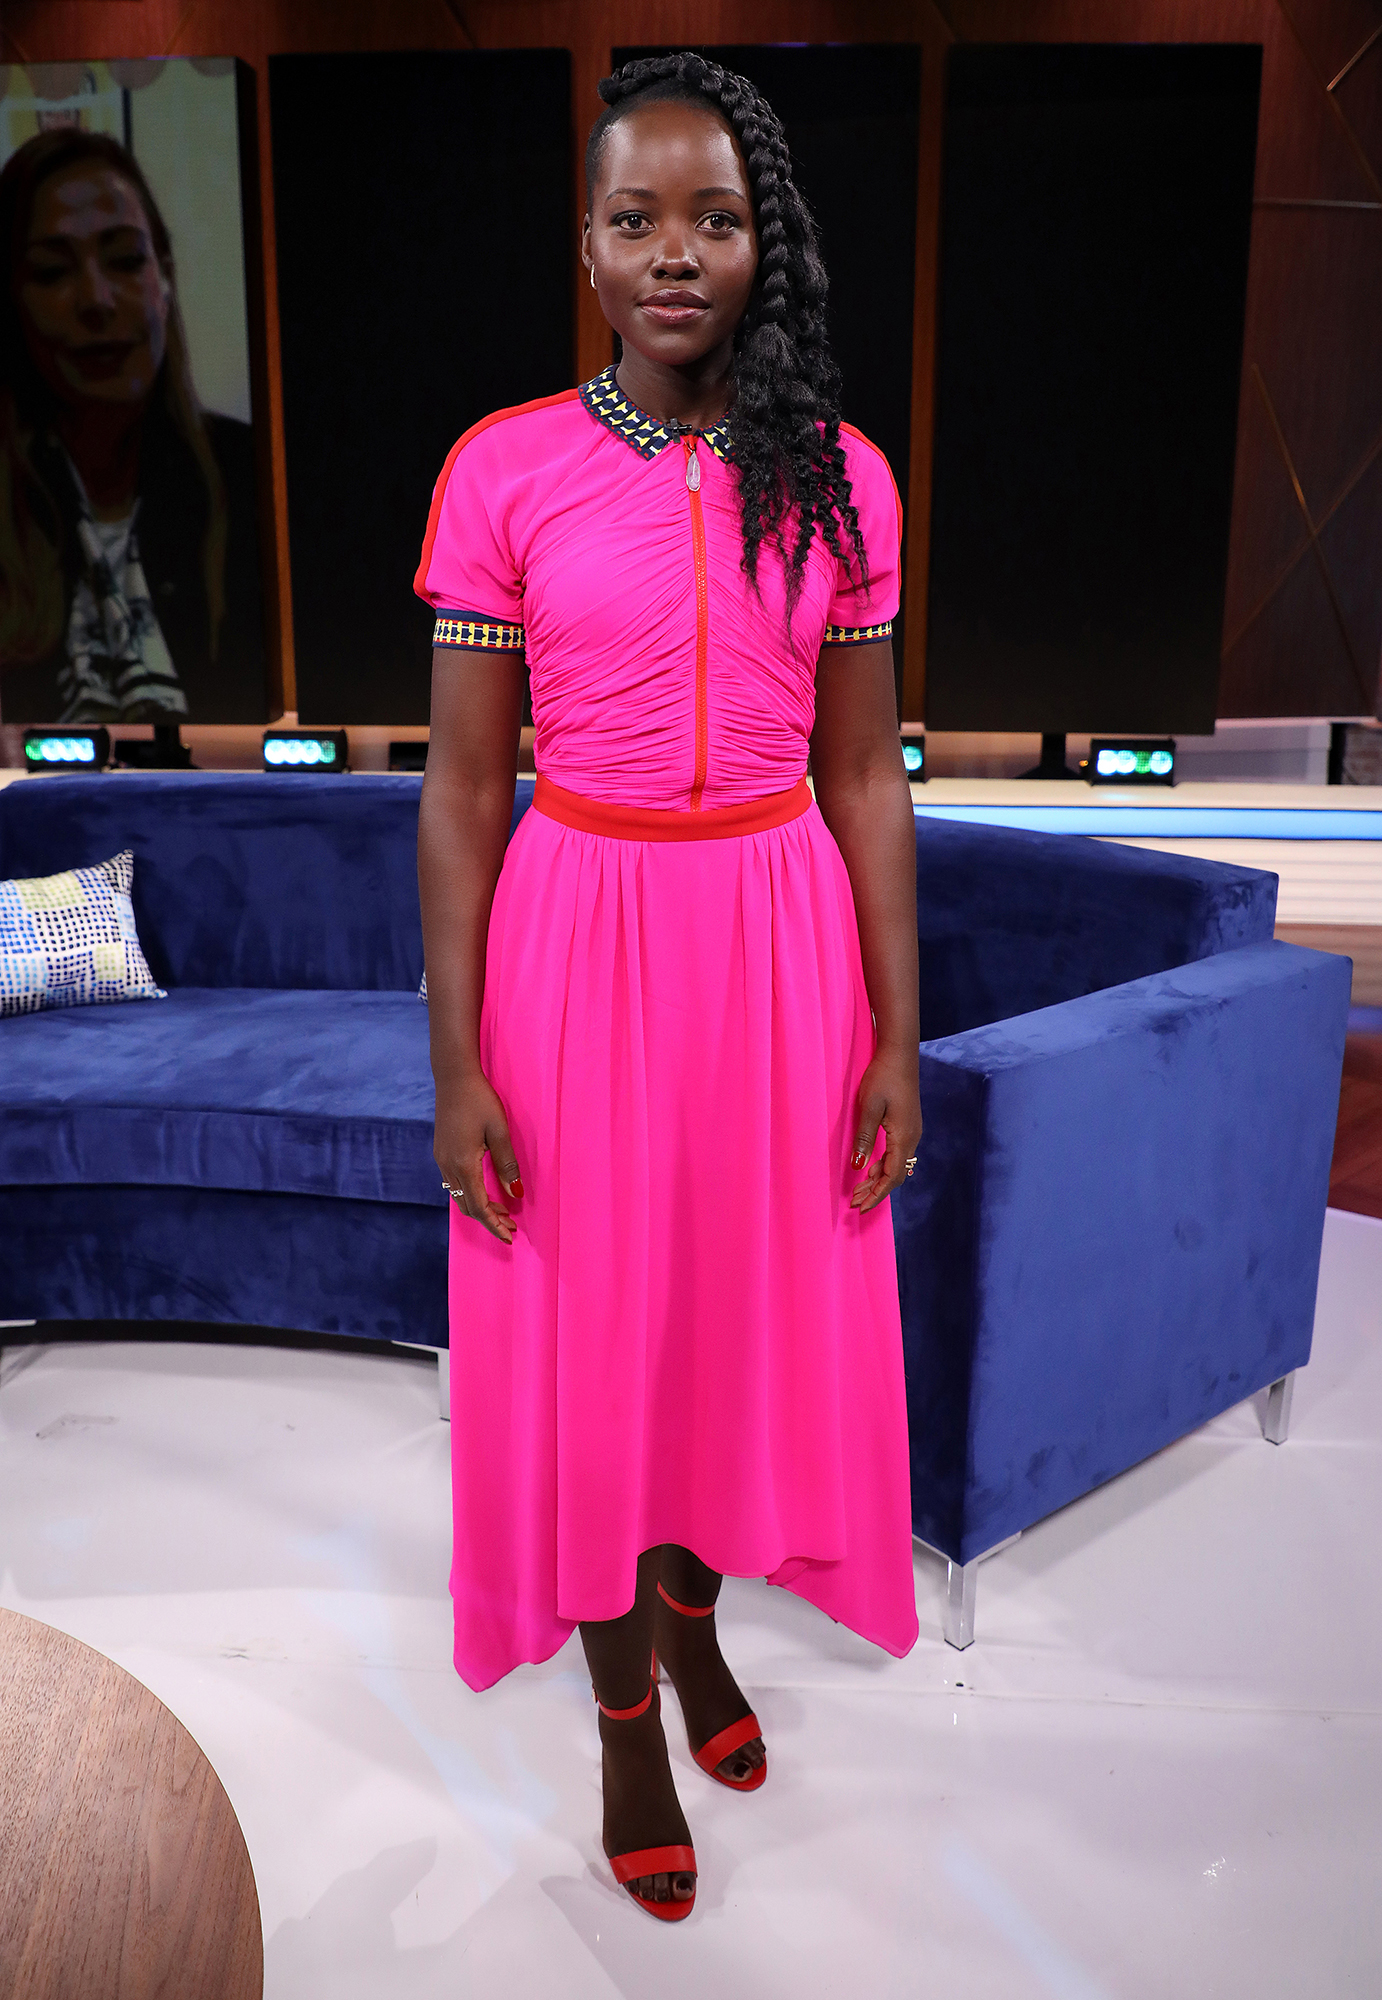 Lupita Nyong'o Can't Stop Wearing These $60 Sandals - Lupita Nyong'o is seen on the set of 'Un Nuevo Dia' at Telemundo Center to promote the film 'Us' on March 21, 2019 in Miami, Florida.